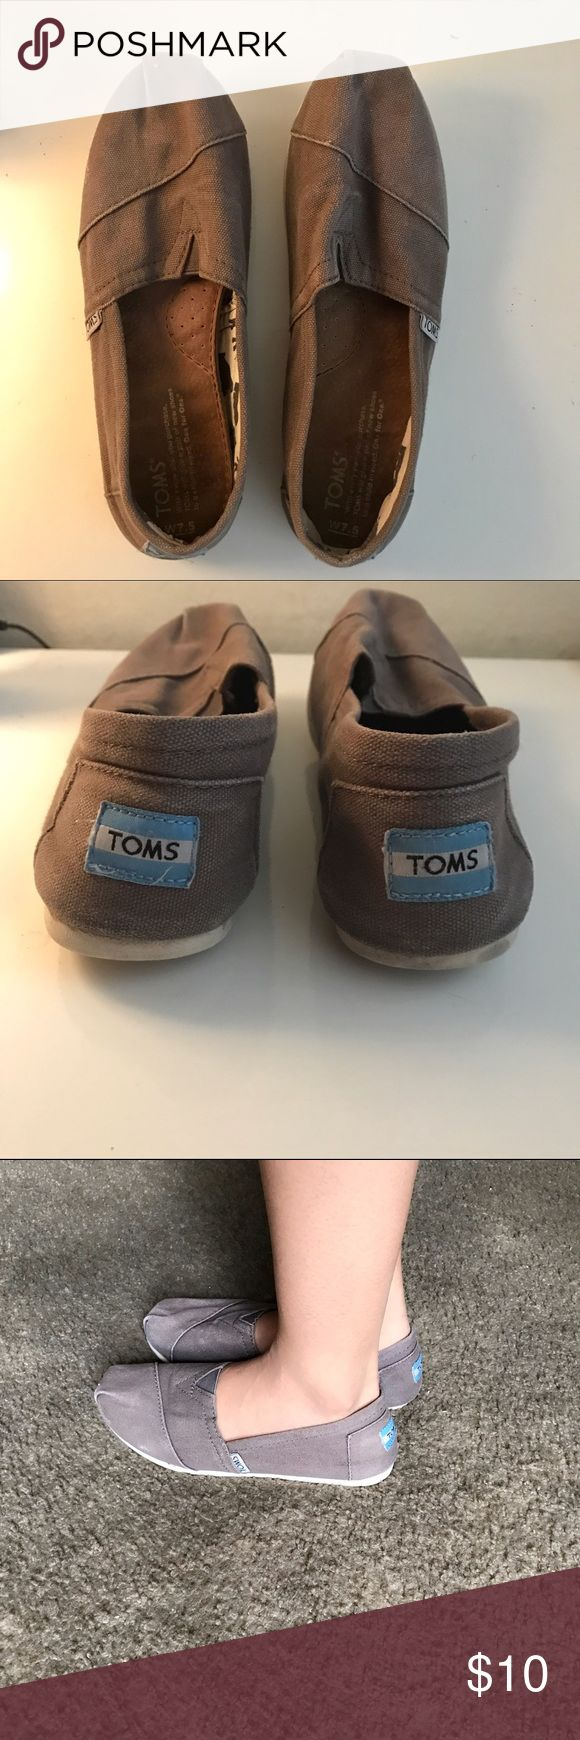 Gray Toms Flats. Size 7.5 Toms Espadrilles Casual Flats. Gray. Used. Size 7.5 TOMS Shoes Espadrilles